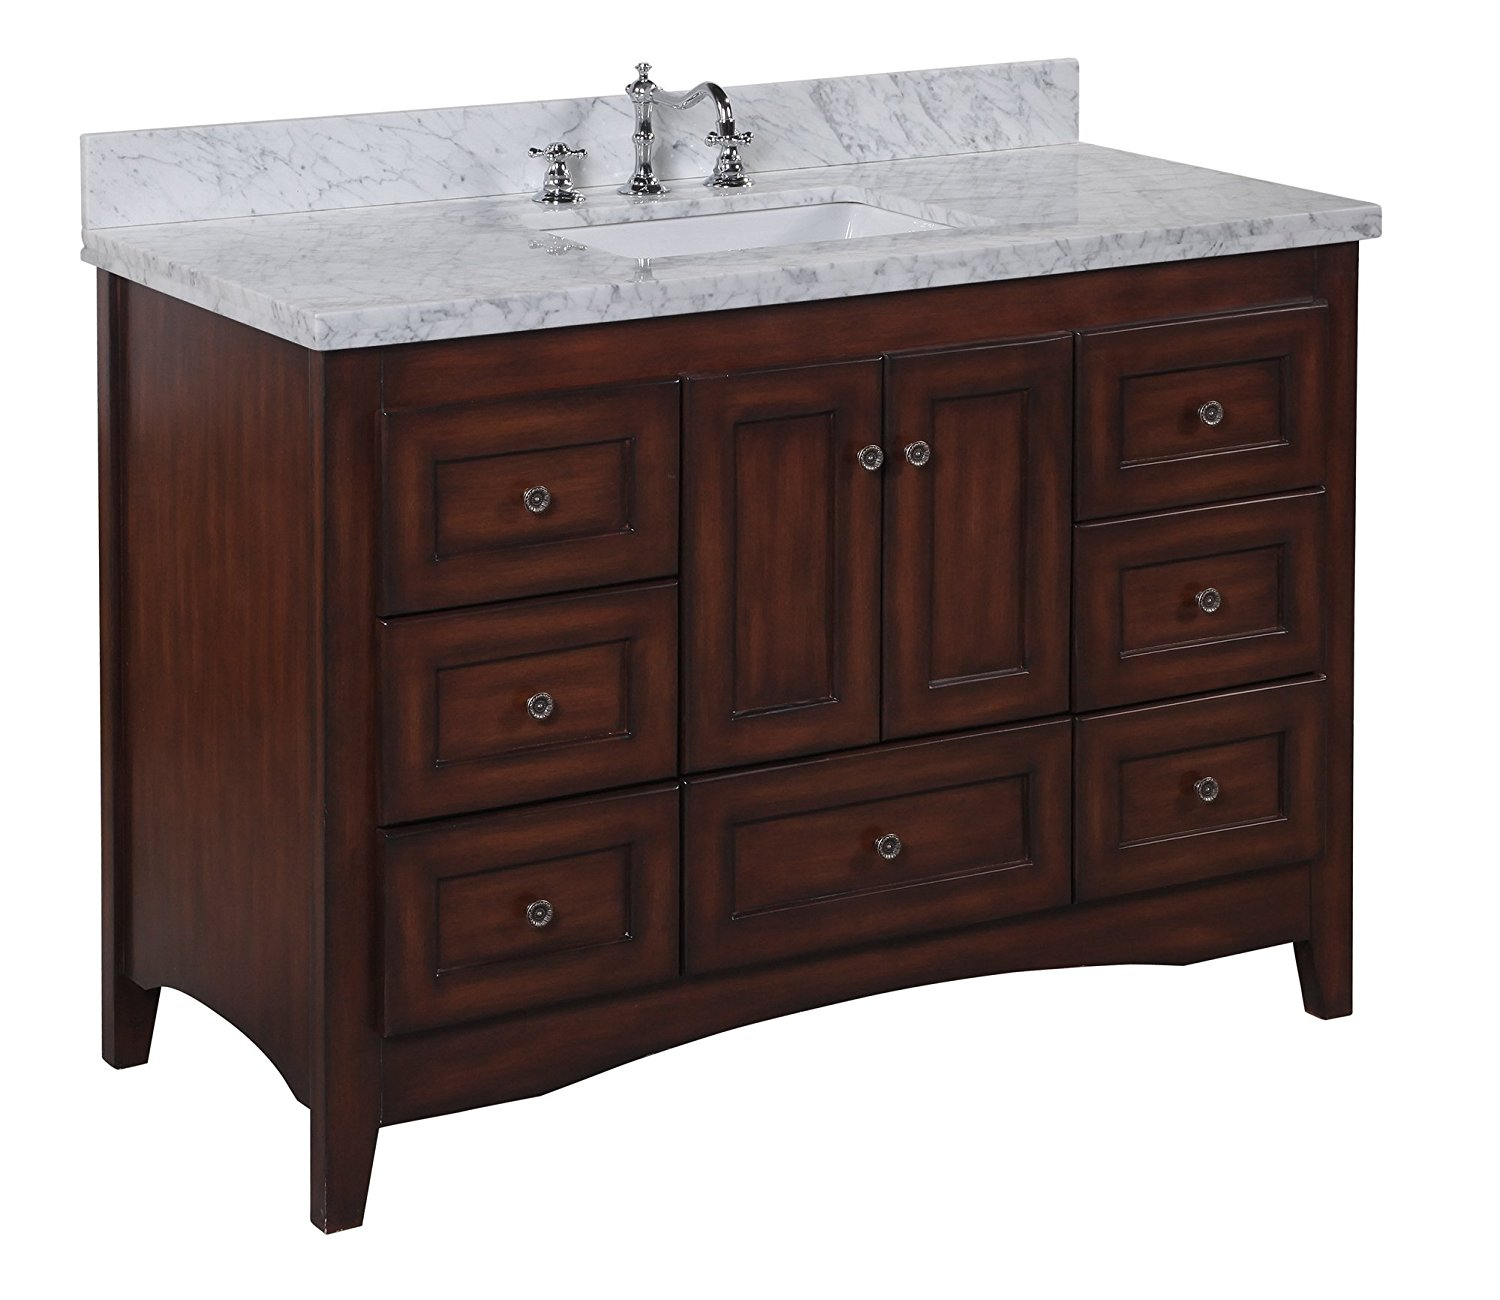 reveiws kitchen bath collection kbc388brcarr abbey bathroom vanity with marble countertop - Bathroom Collections Furniture